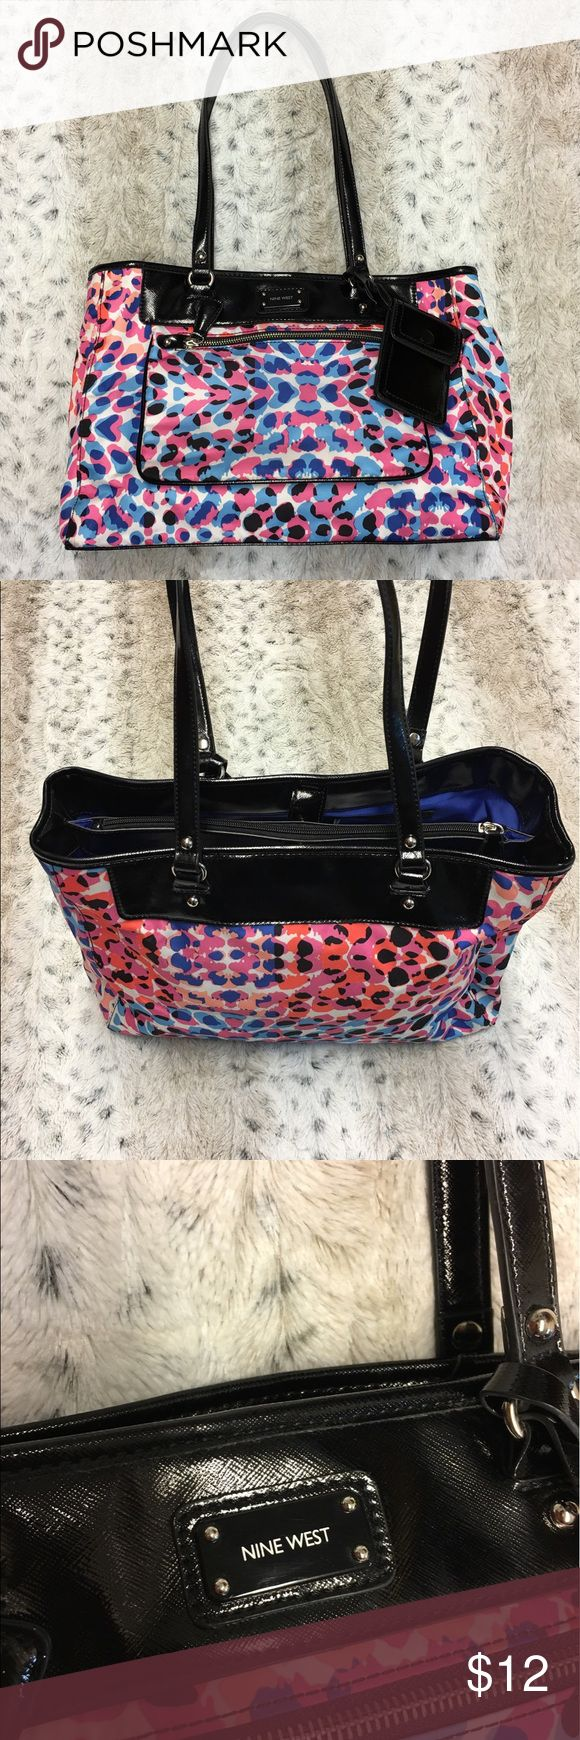 Nine West Purse Colorful Leopard Print Nine West Purse. In Good Condition, has a stain on the inside of Purse as shown in the 5th Picture, also a few spots in the 6th and 7th pic. Colors Pink, Hot Peach, Dark Blue, Light Blue and Black on a White Background Nine West Bags Shoulder Bags